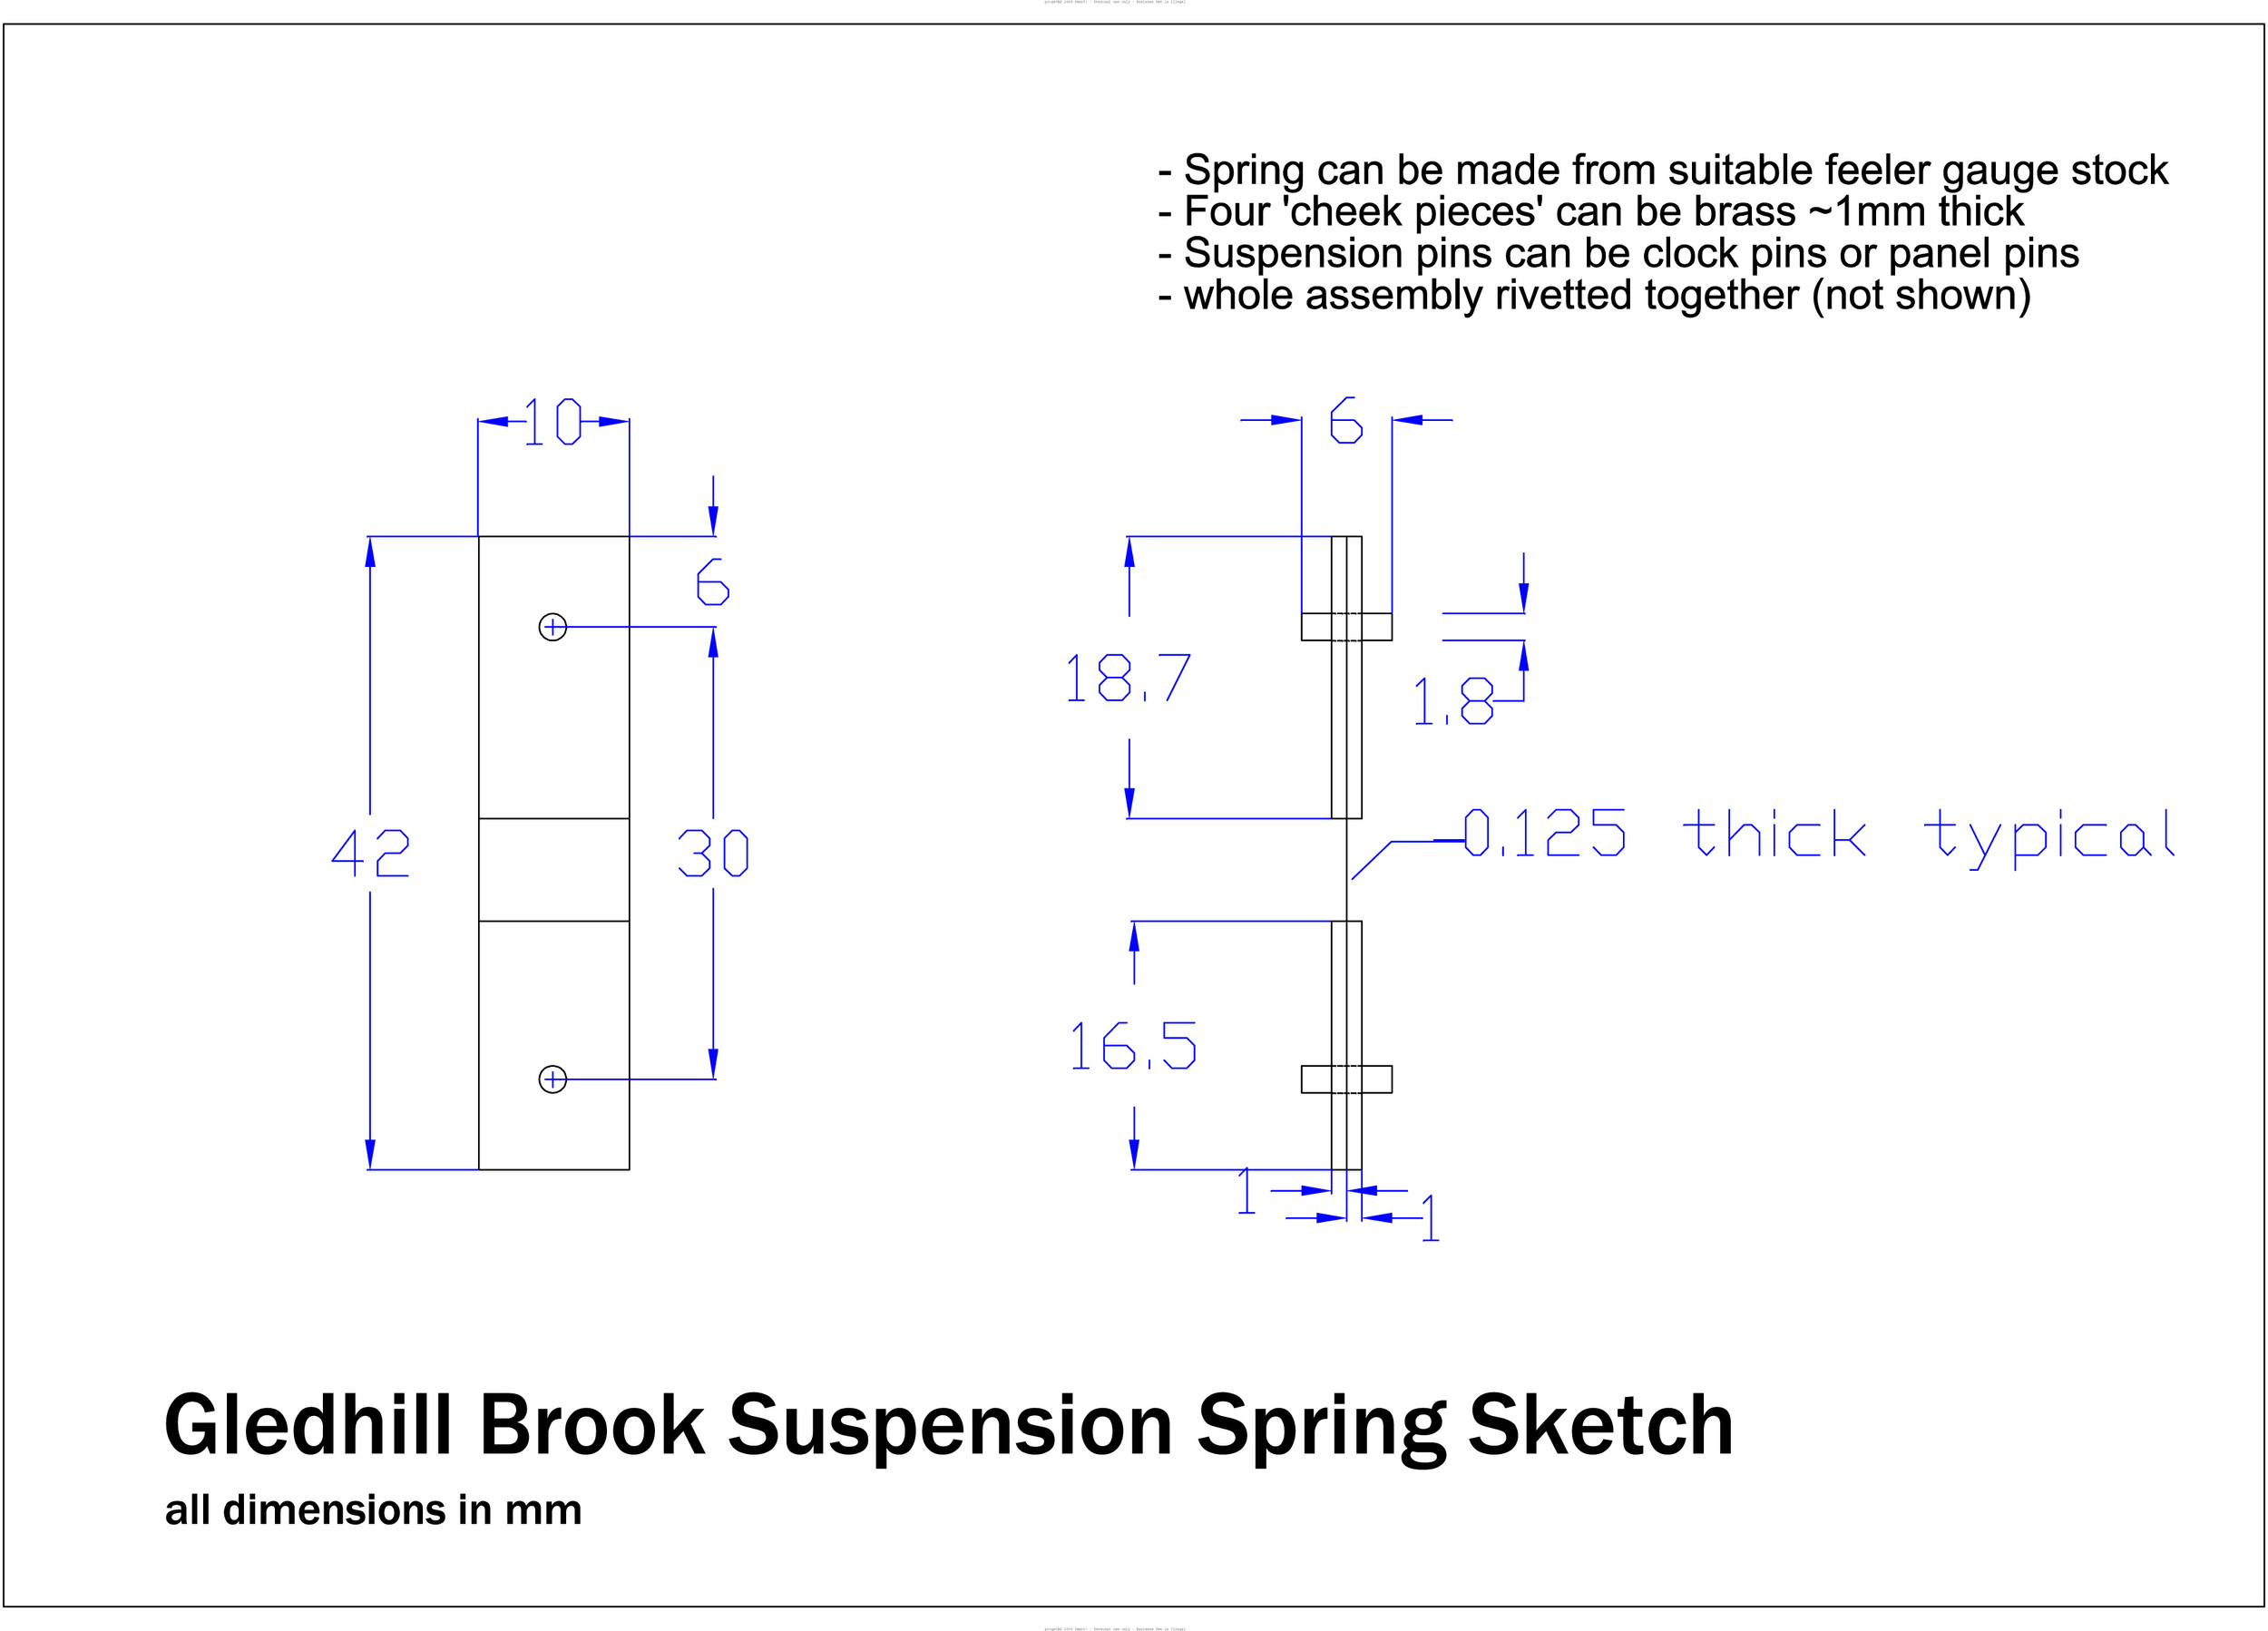 Thank you to Tony N, one of our visitors. He created this incredible diagram of a GB suspension spring. We get many questions about the dimensions of these, so hopefully this will help many of you out!